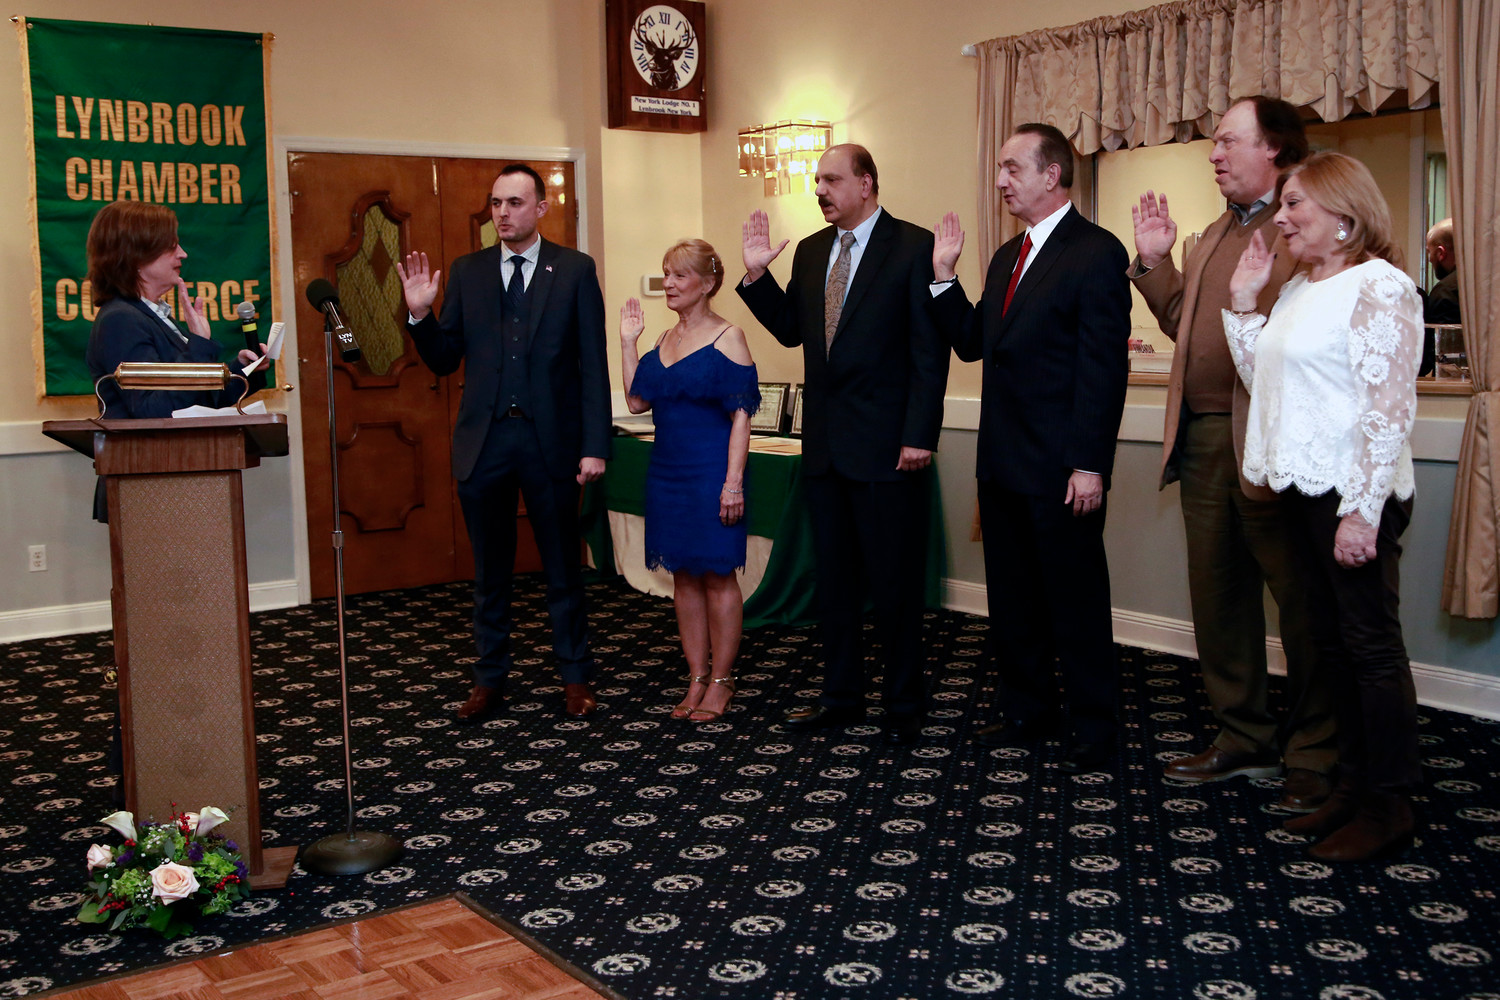 At the Lynbrook Chamber of Commerce's annual installation dinner, Assemblywoman Judy Griffin, far left, swore in, from left, Vice Presidents Michael Davies, Polly Talbott, John Hajisava, Brude Hafner, Jeffrey Greenfield and Rhonda Glickman.